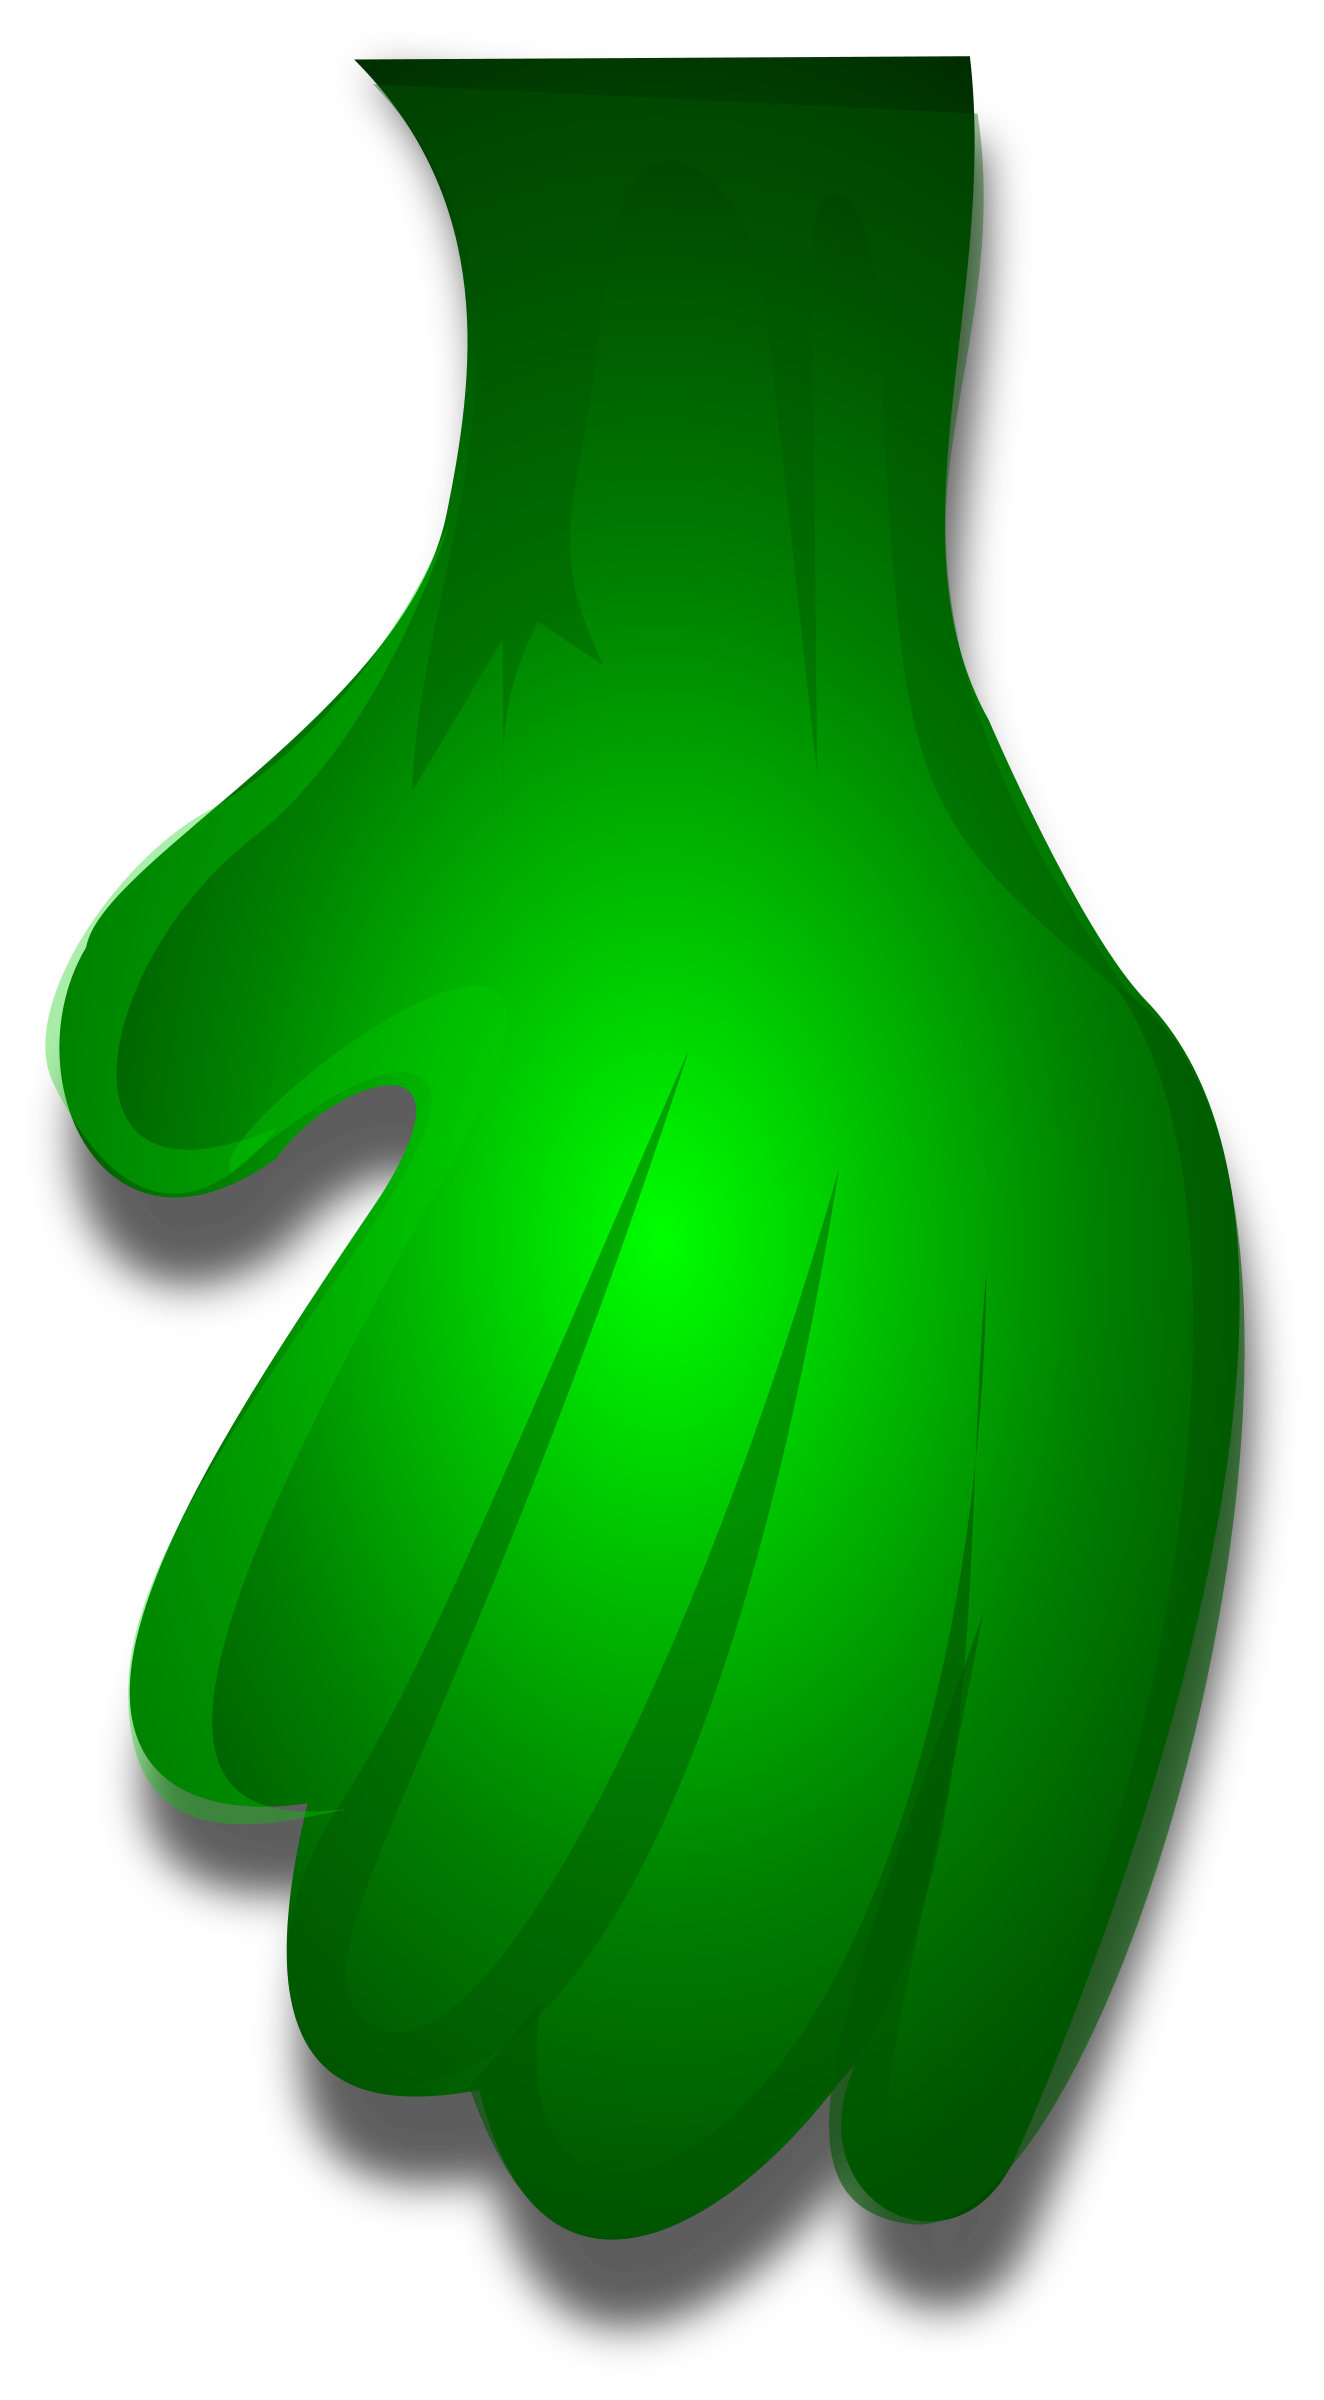 Green Monster Hand 1 by Merlin2525